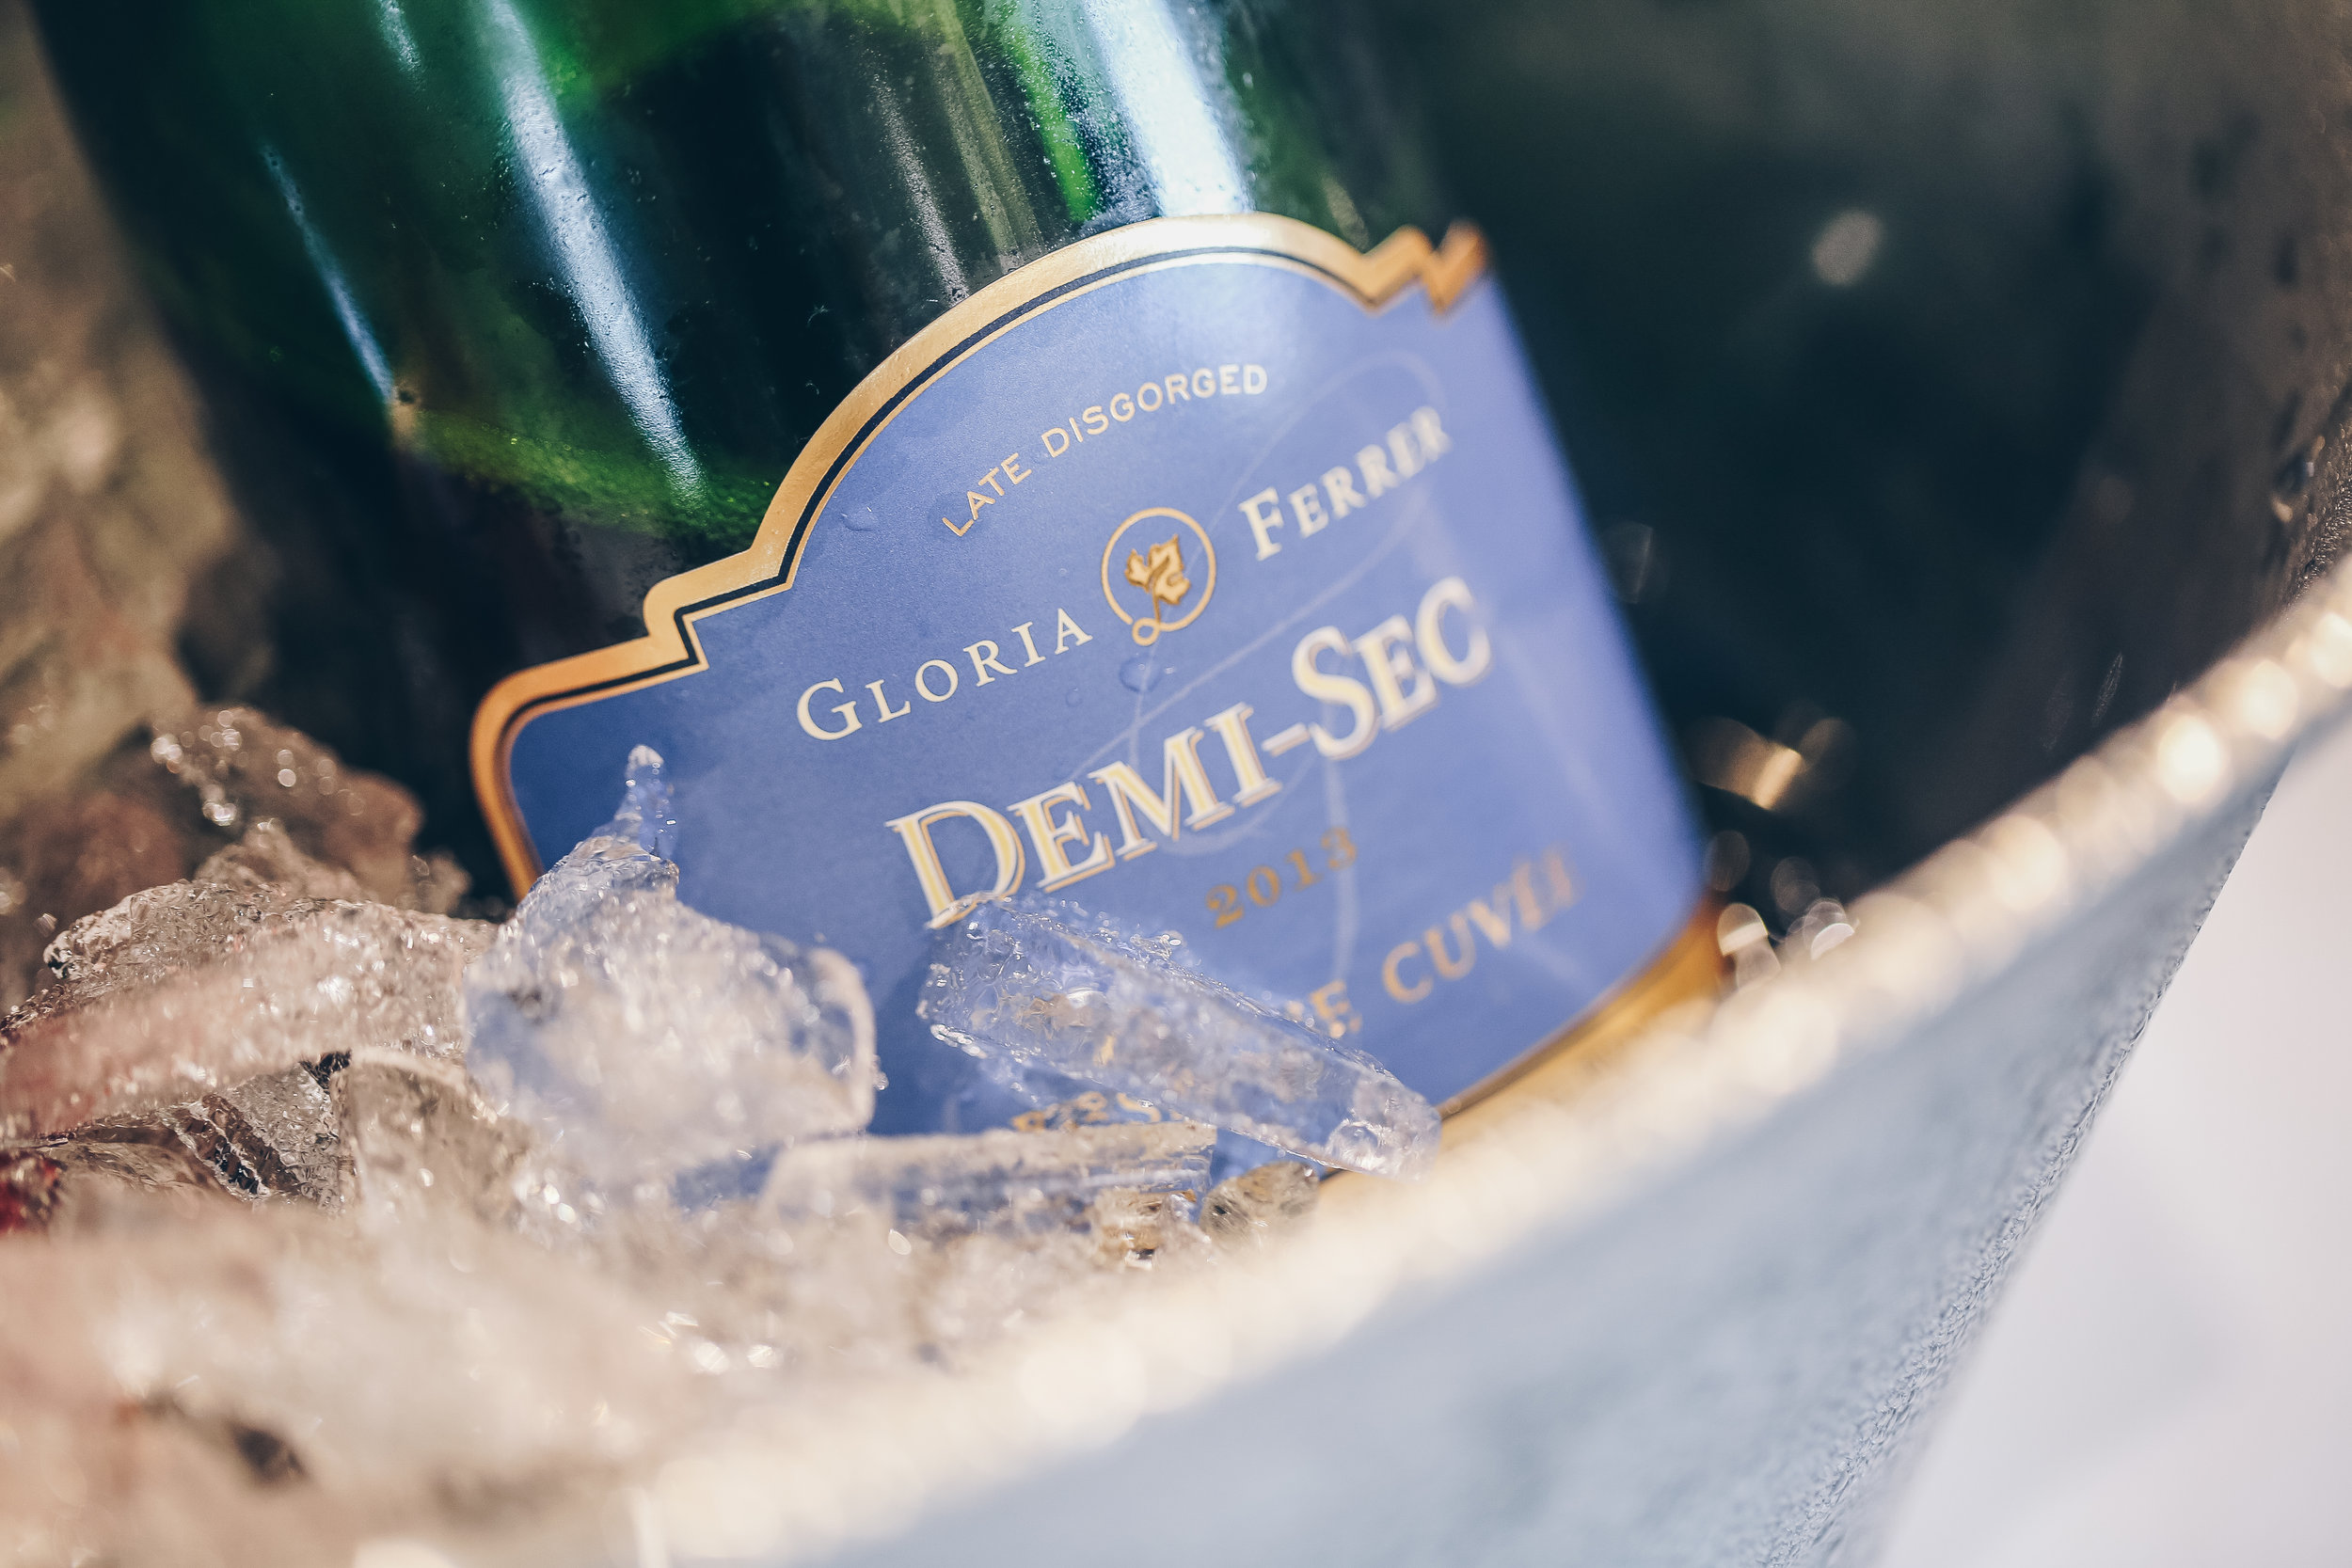 2013 Demi-Sec - A semi-sweet sparkling wine that will leave you wanting a second bottle (we couldn't leave with out one for our collection). The Demi-Sec can be perfectly paired with a range of hearty foods from sweet to spicy.  *Alec's top choice*